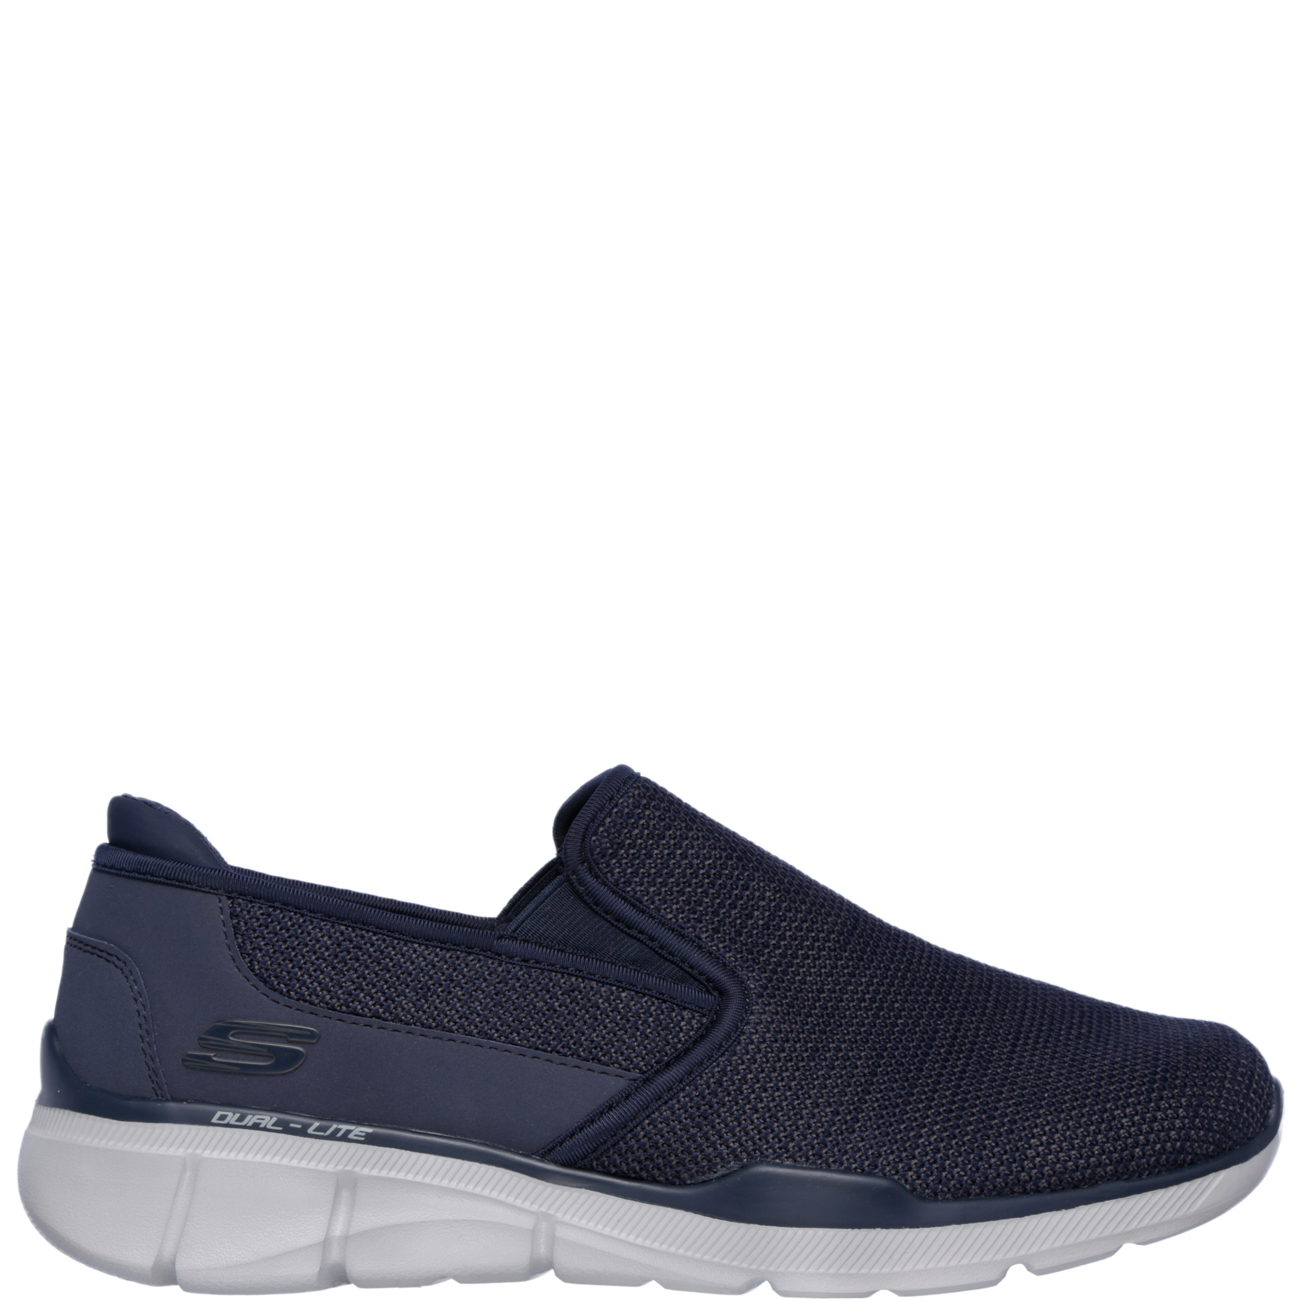 Details about Mens Skechers Equalizer 3.0 Sumnin Relaxed Fit Walking Running Trainers UK 7 12